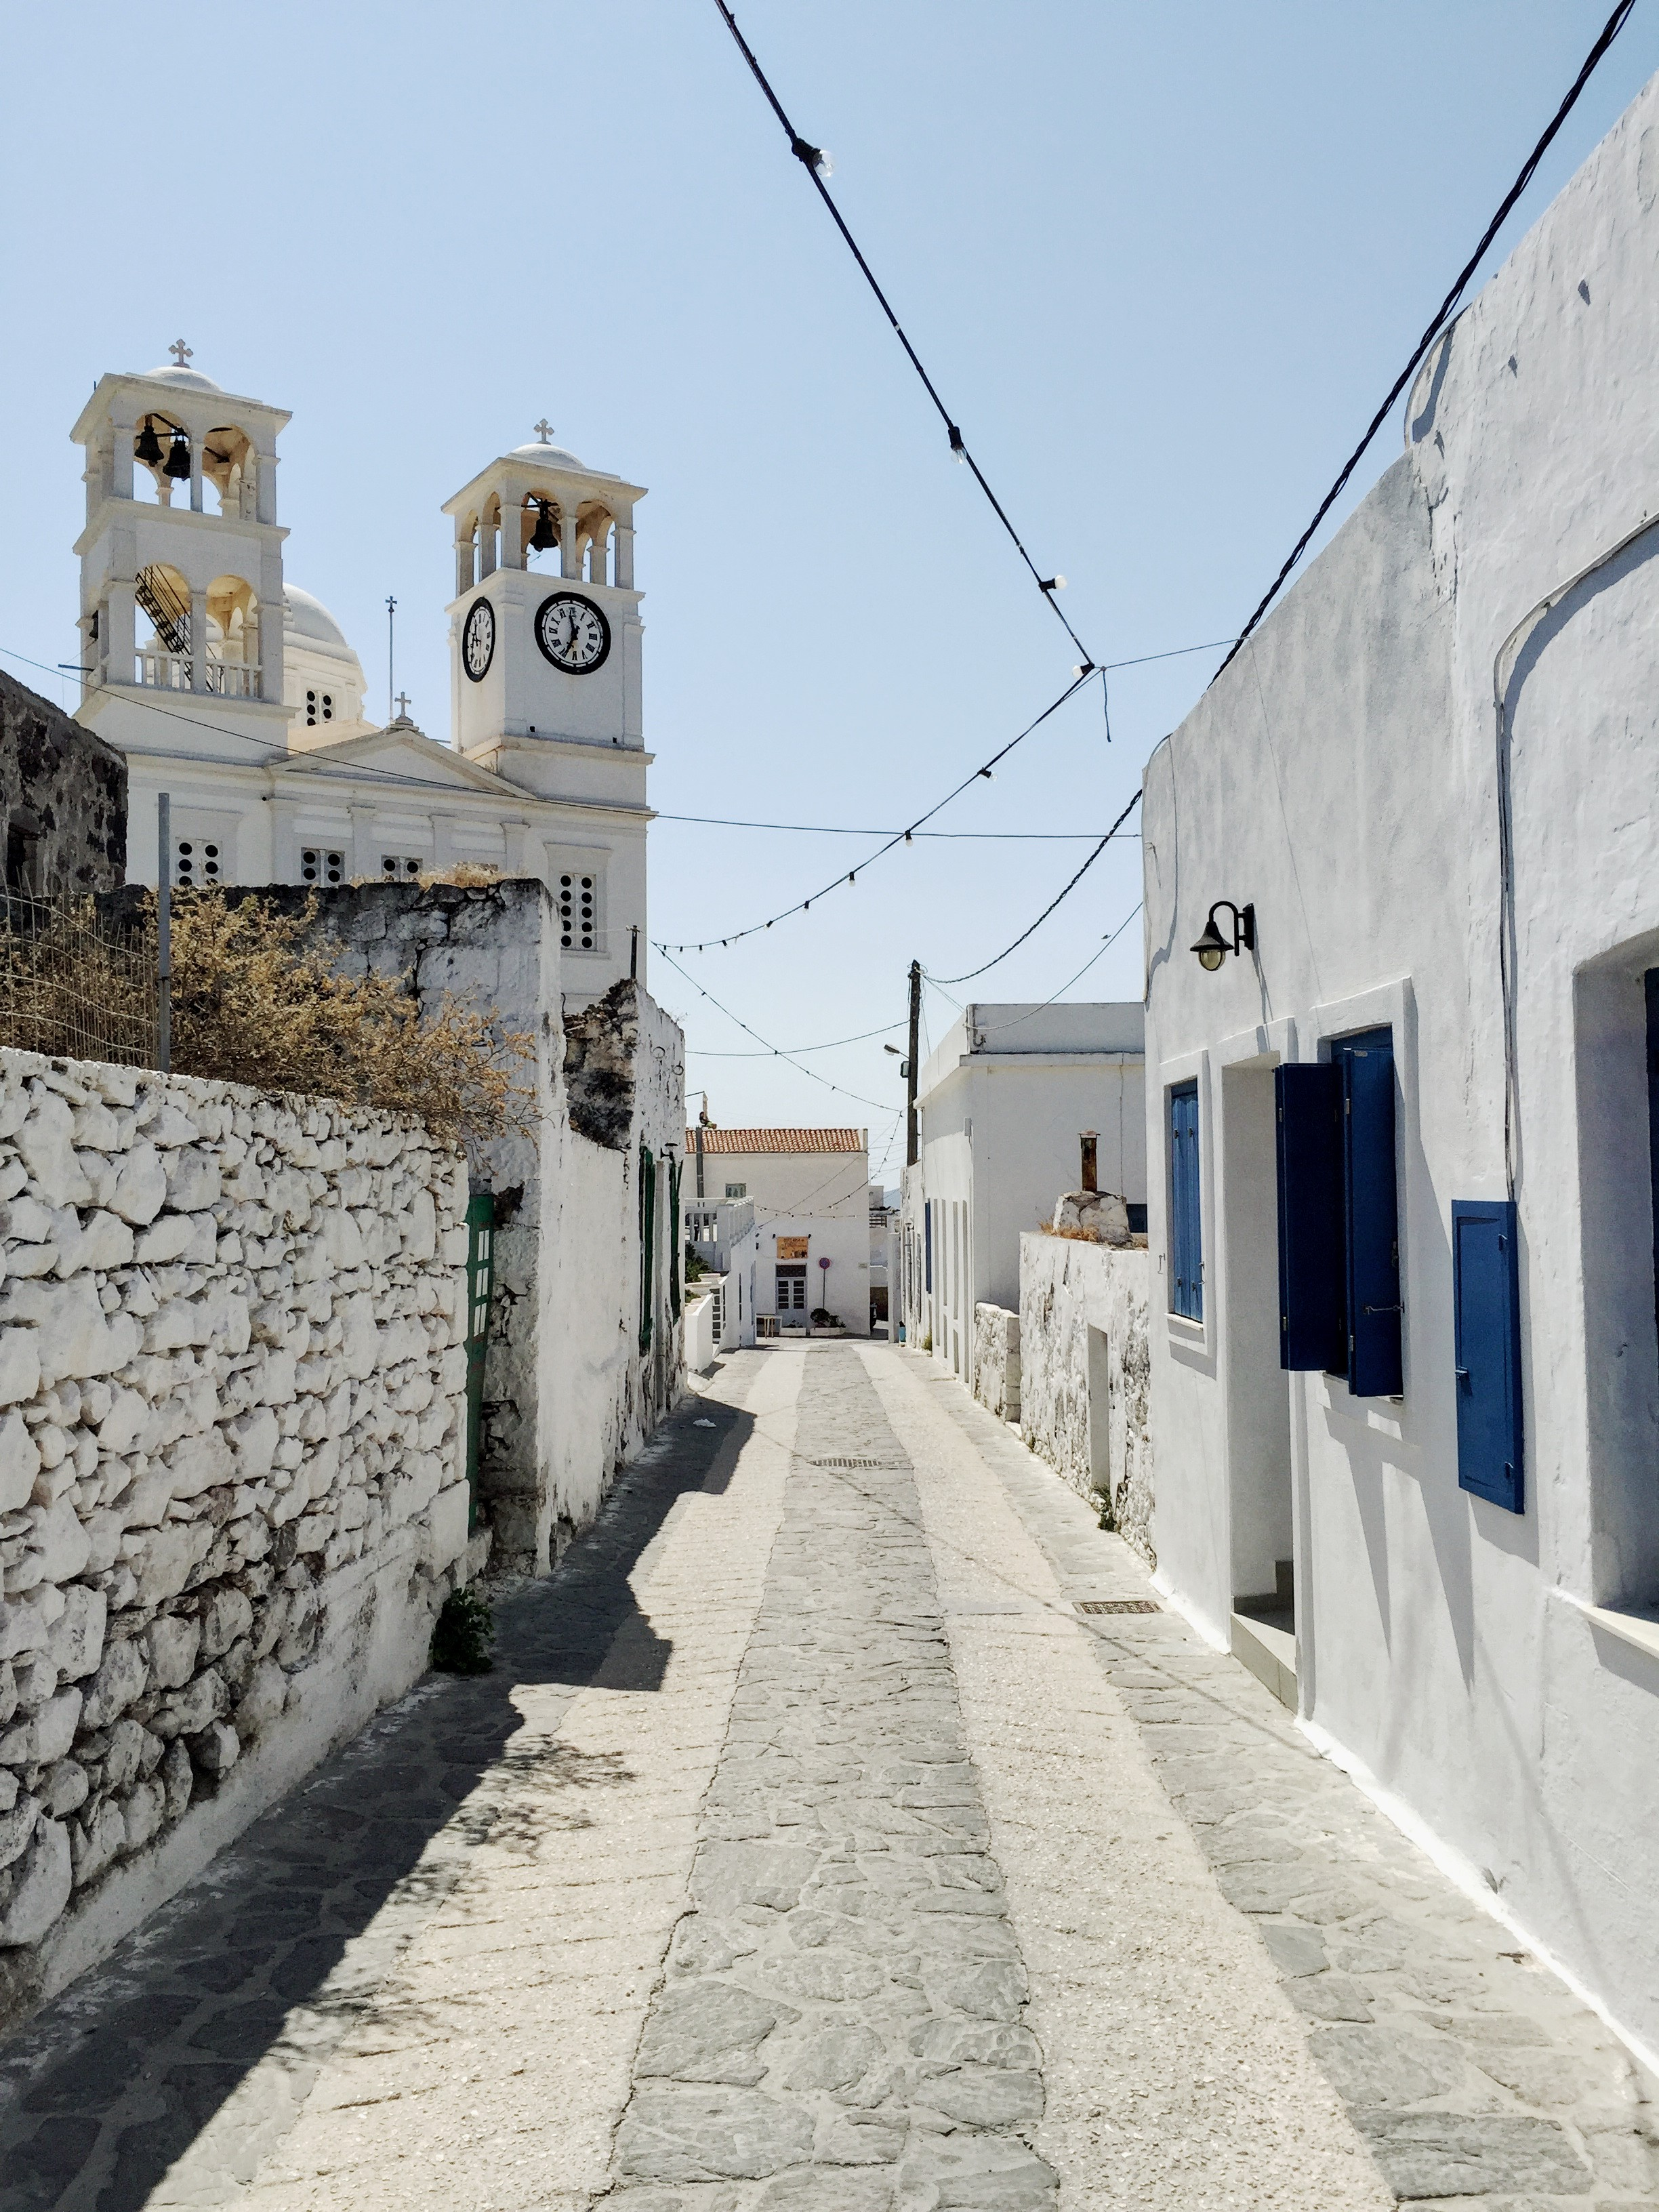 Around the picturesque streets or Tripiti